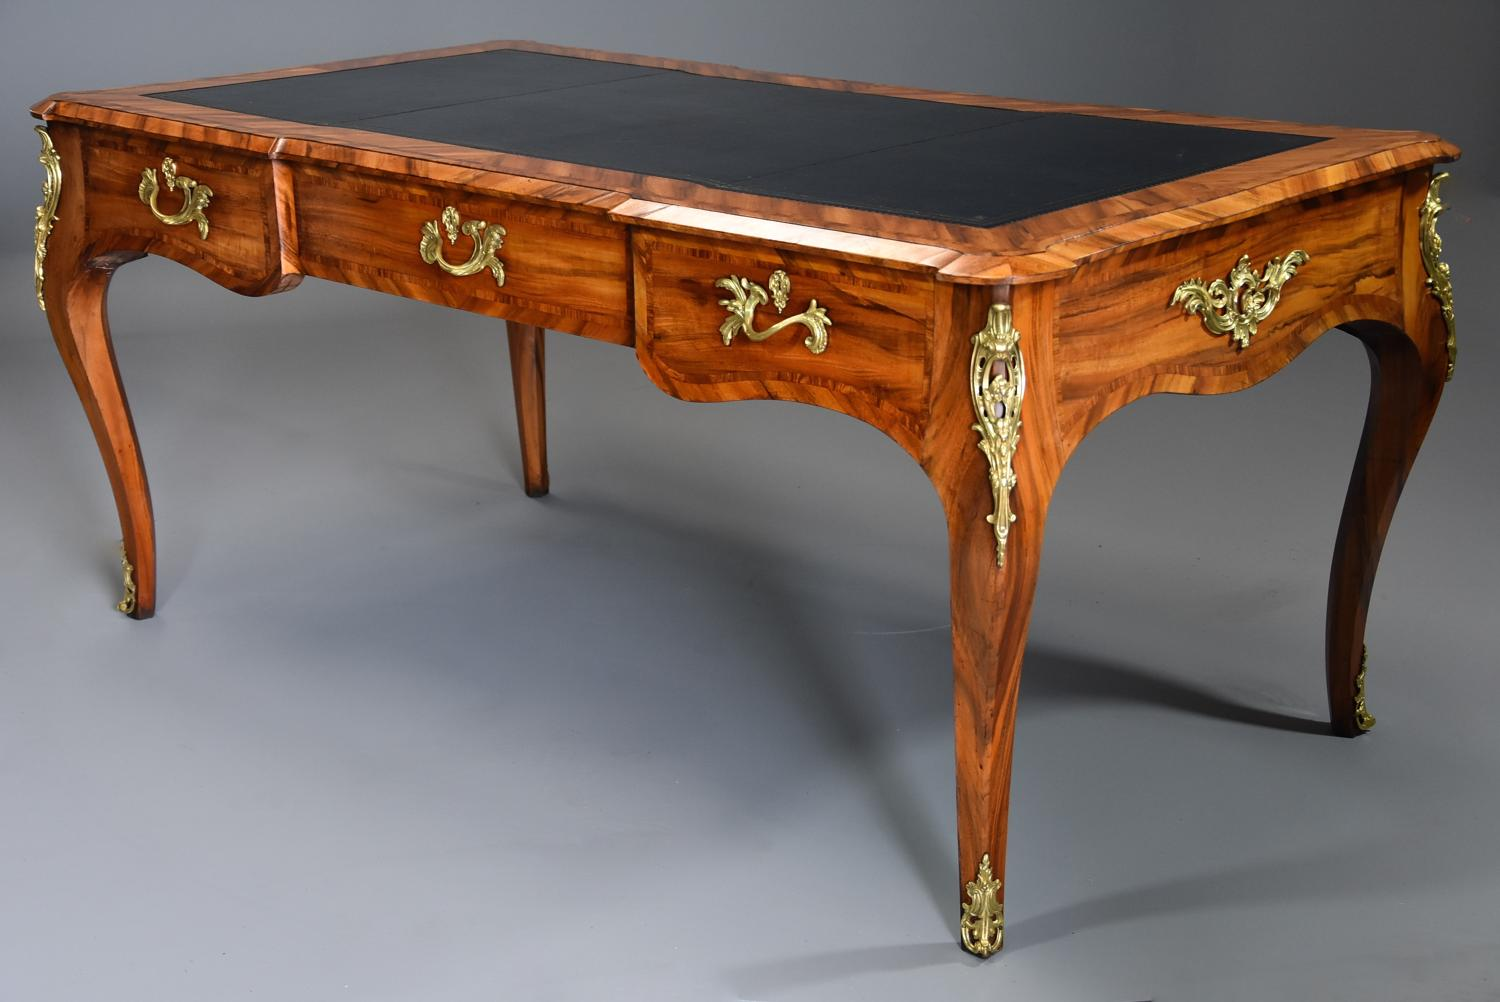 19thc Goncalo alves bureau plat in the French style, possibly Gillows